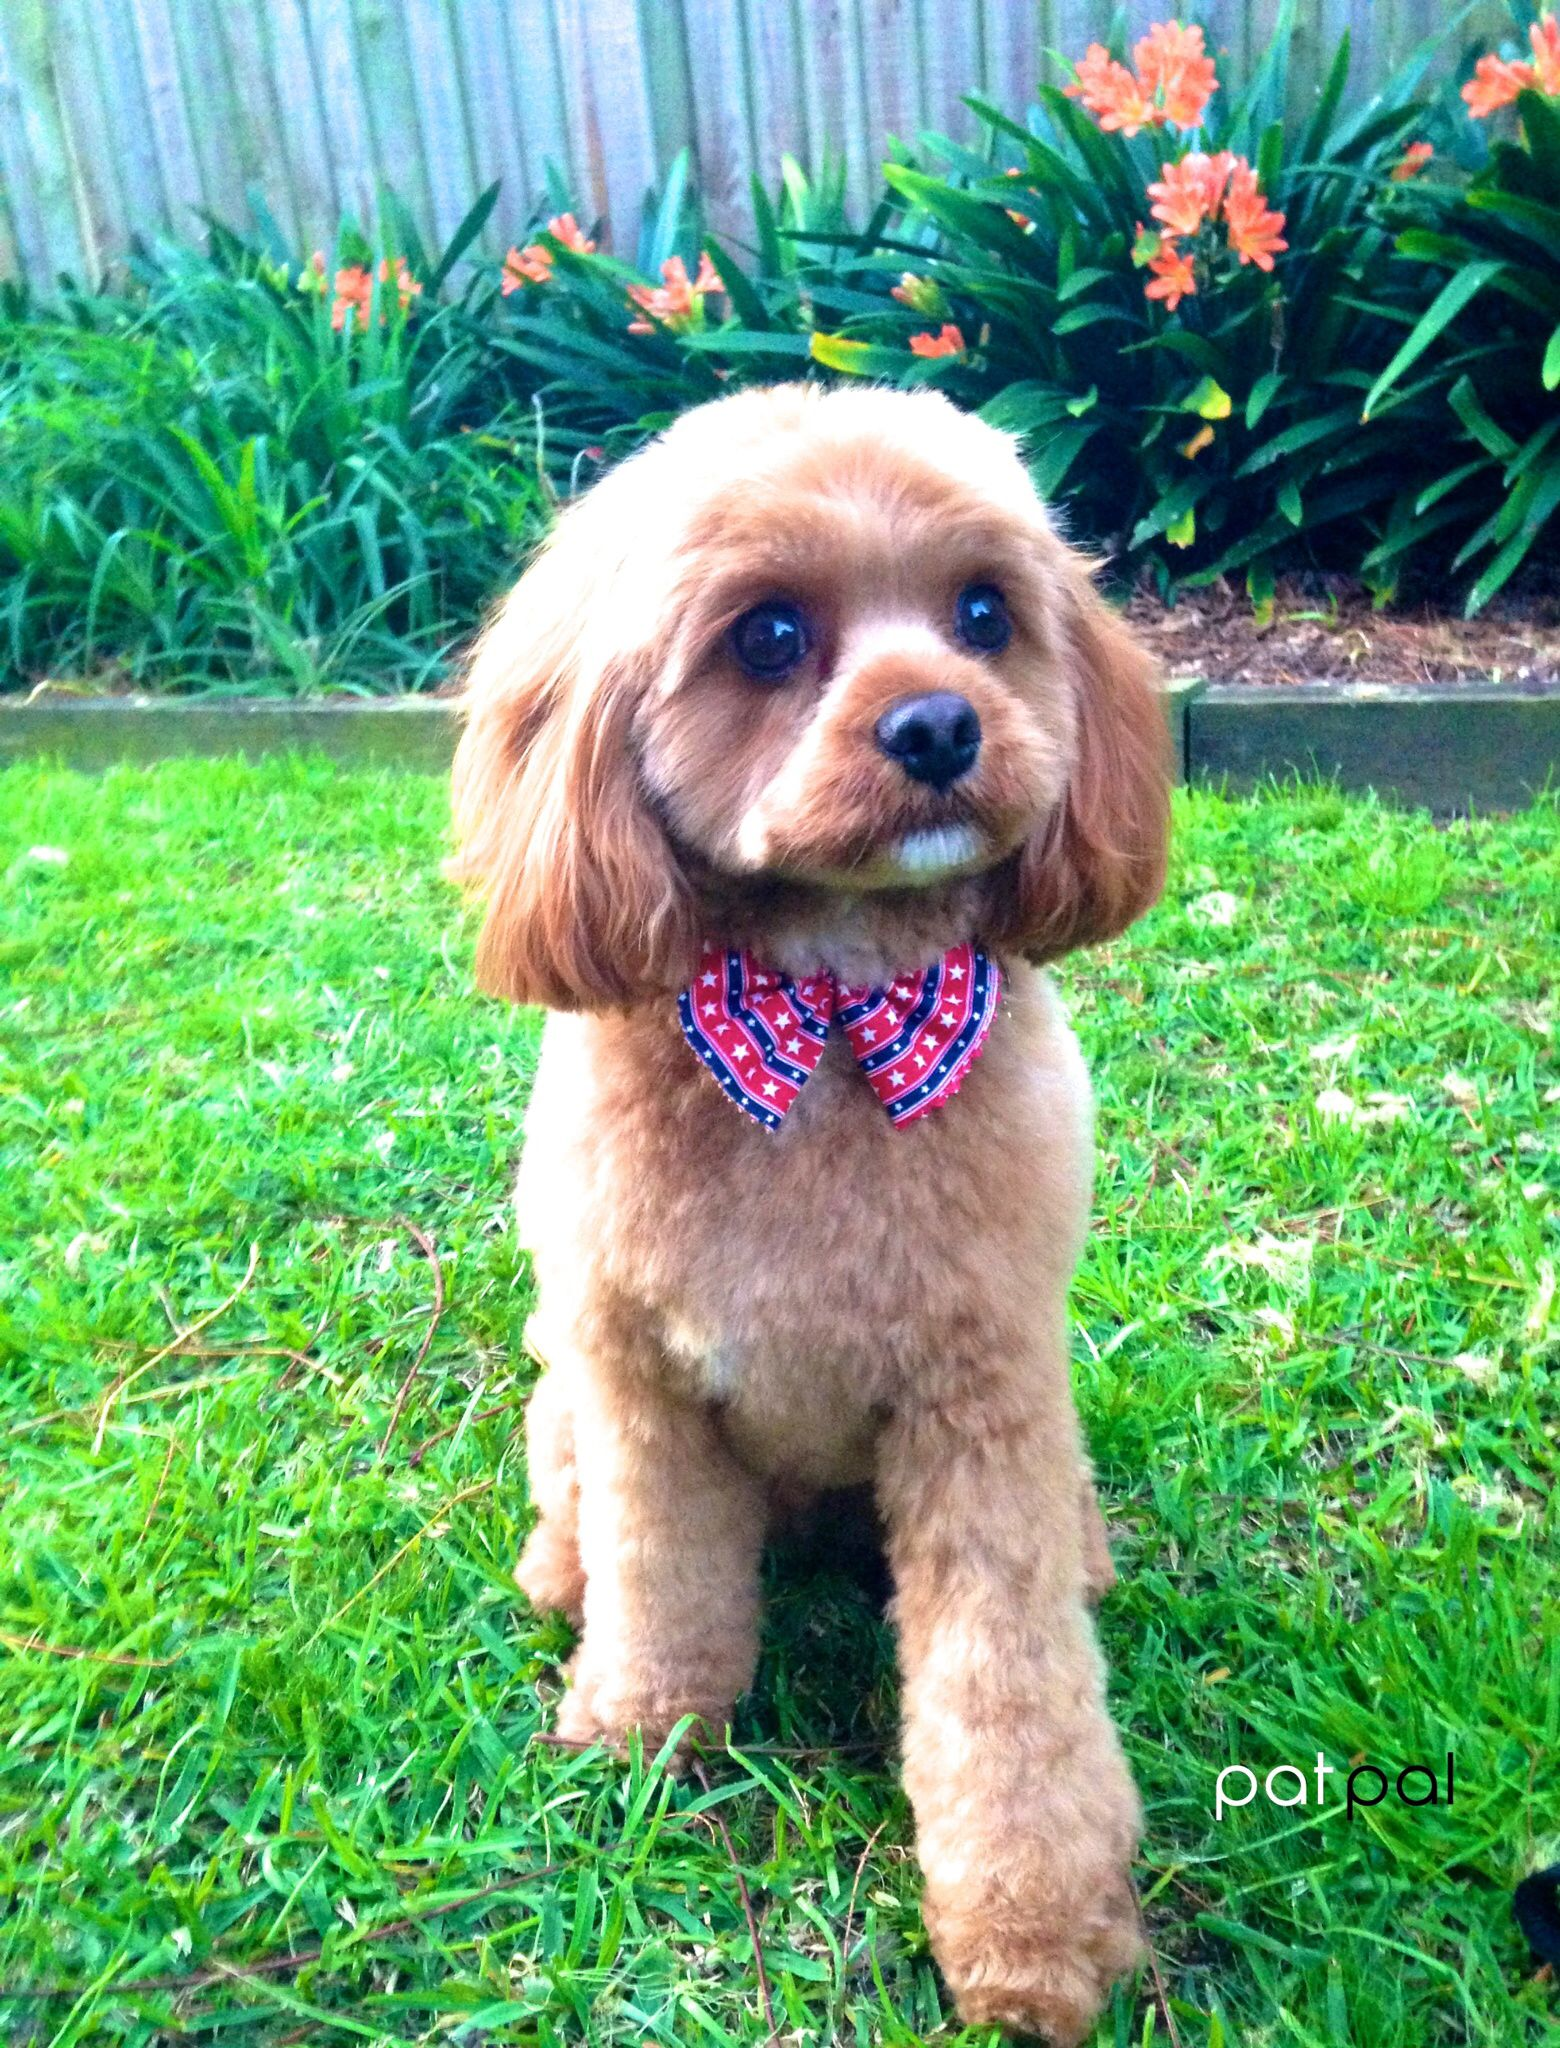 Cockapoo haircuts - Cute Cavoodle At Patpal Dog Grooming Willoughby Sydney Www Patpaldoggrooming Com